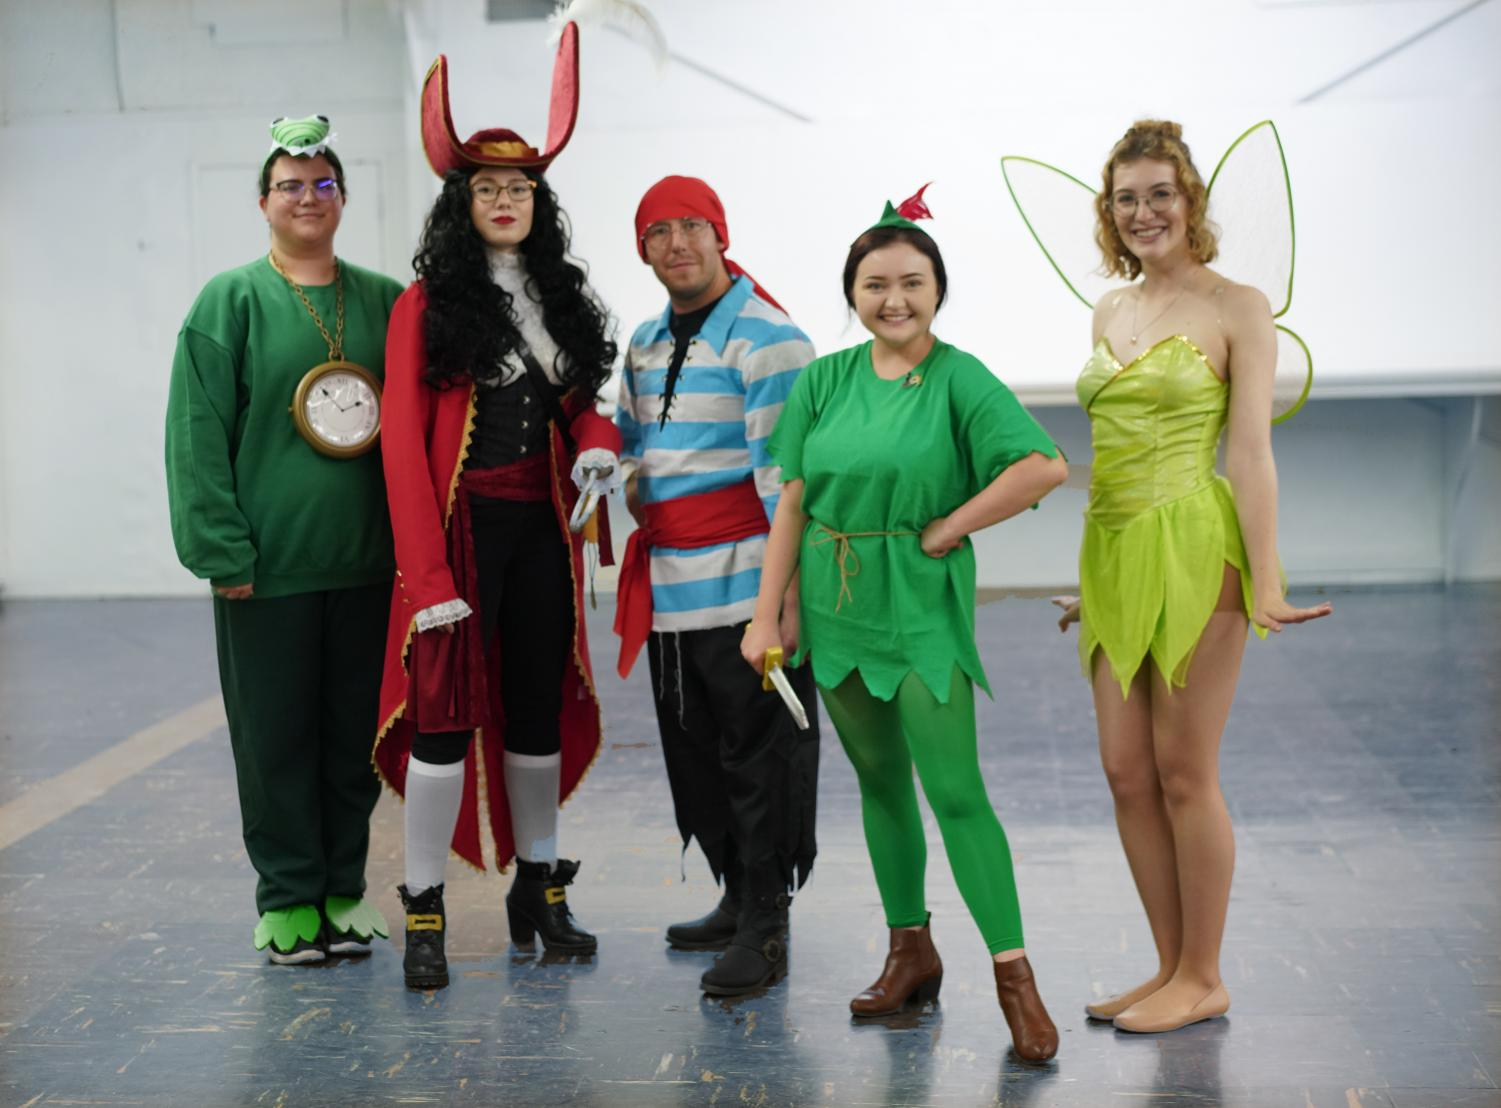 Costume Contest winners, the cast of Peter Pan from left to right: Kristine McDonald as the Crocodile, Ashley Thoene as Captain Hook, Niel Vandervert as Smee, Megan Jarrett as Peter Pan, and Corissa Garcia as Tinkerbell